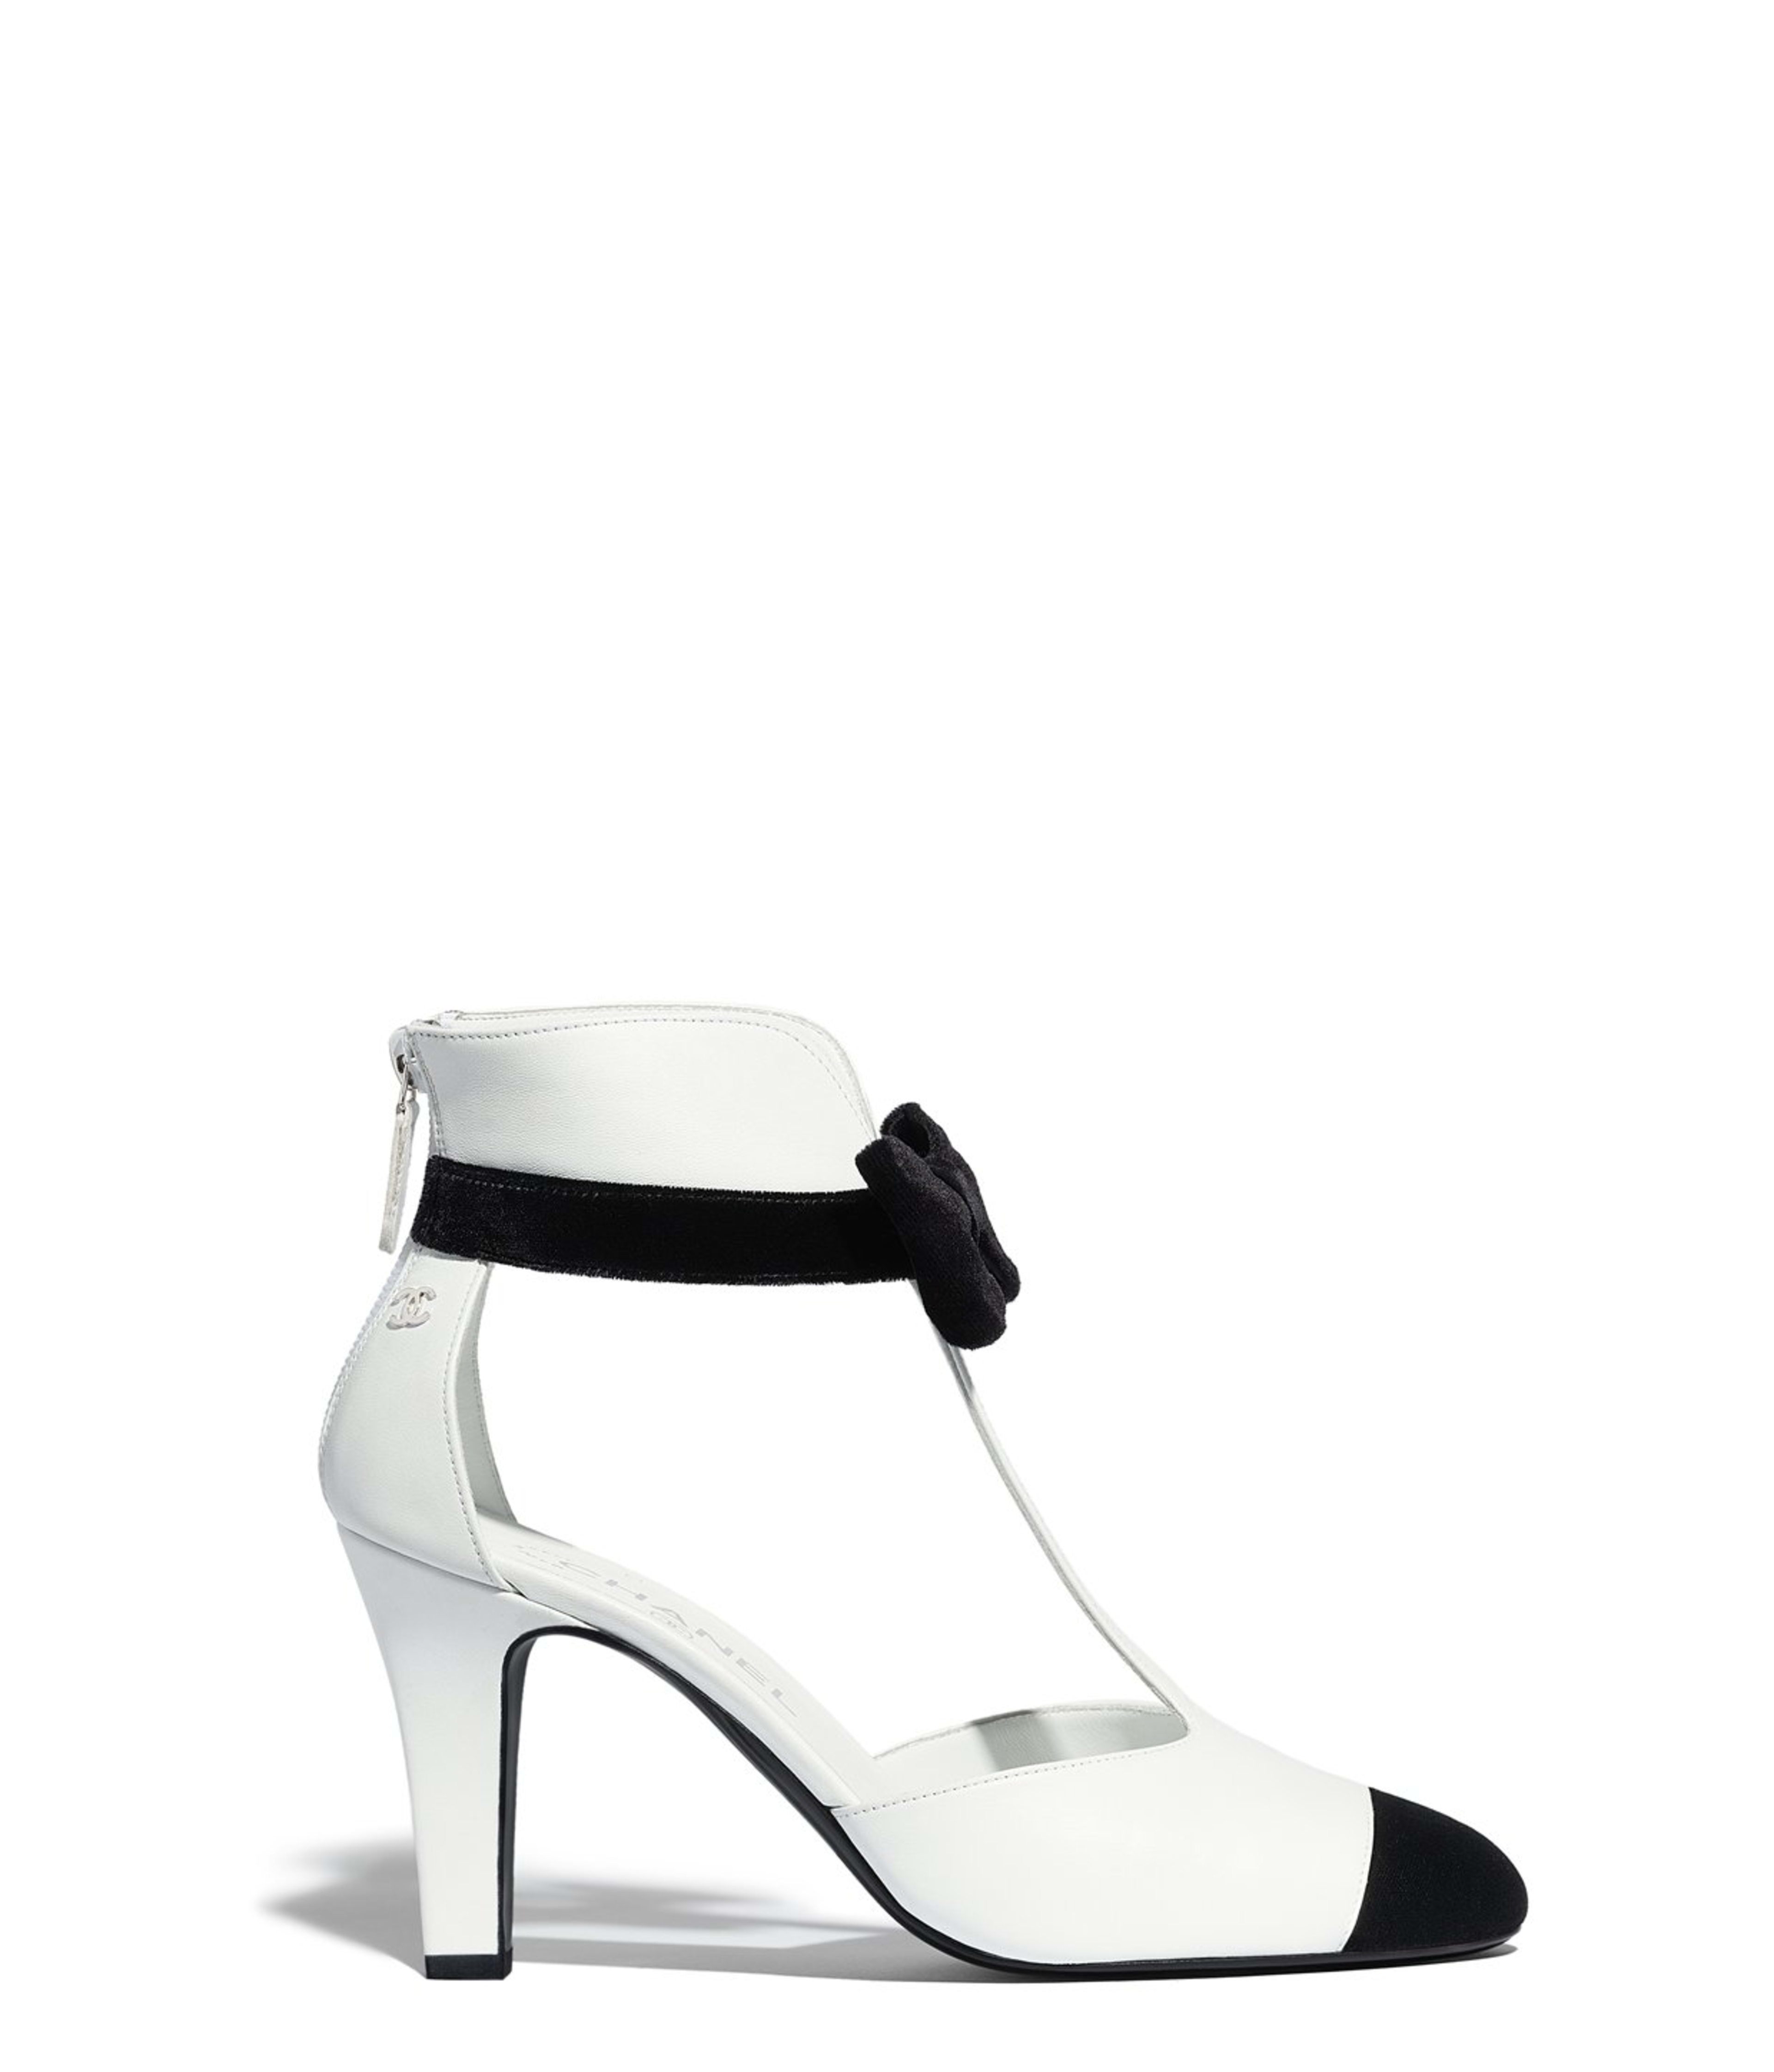 3d33cfc7841 Sandals - Shoes | CHANEL